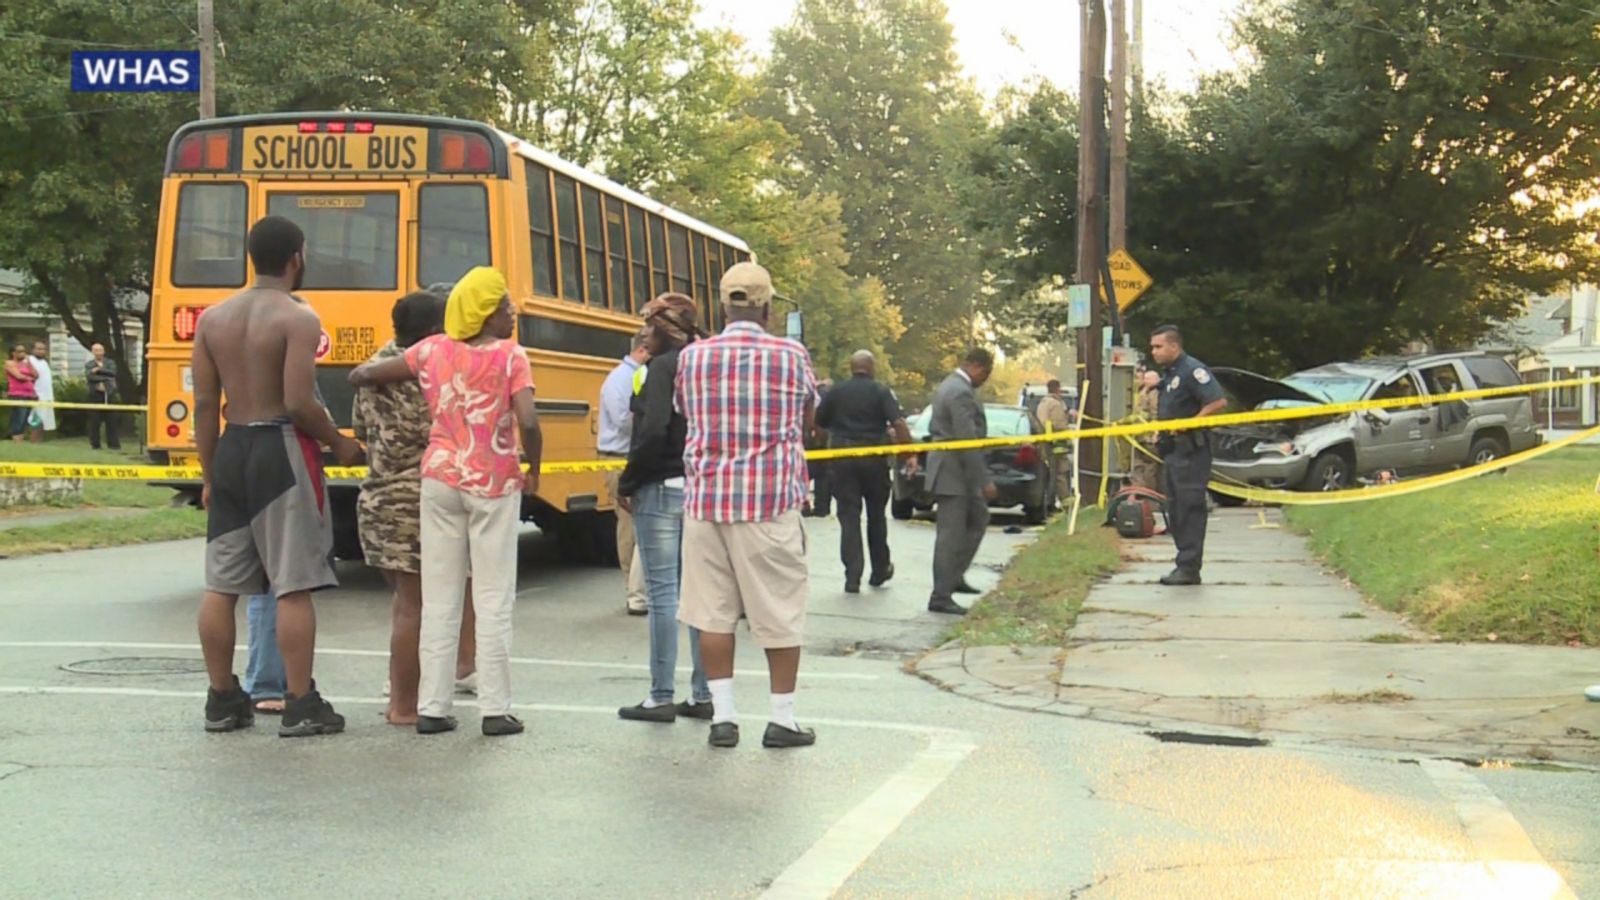 VIDEO: Police in Louisville, Kentucky, say three children remain in the hospital today after an SUV hit them as they prepared to board a school bus.